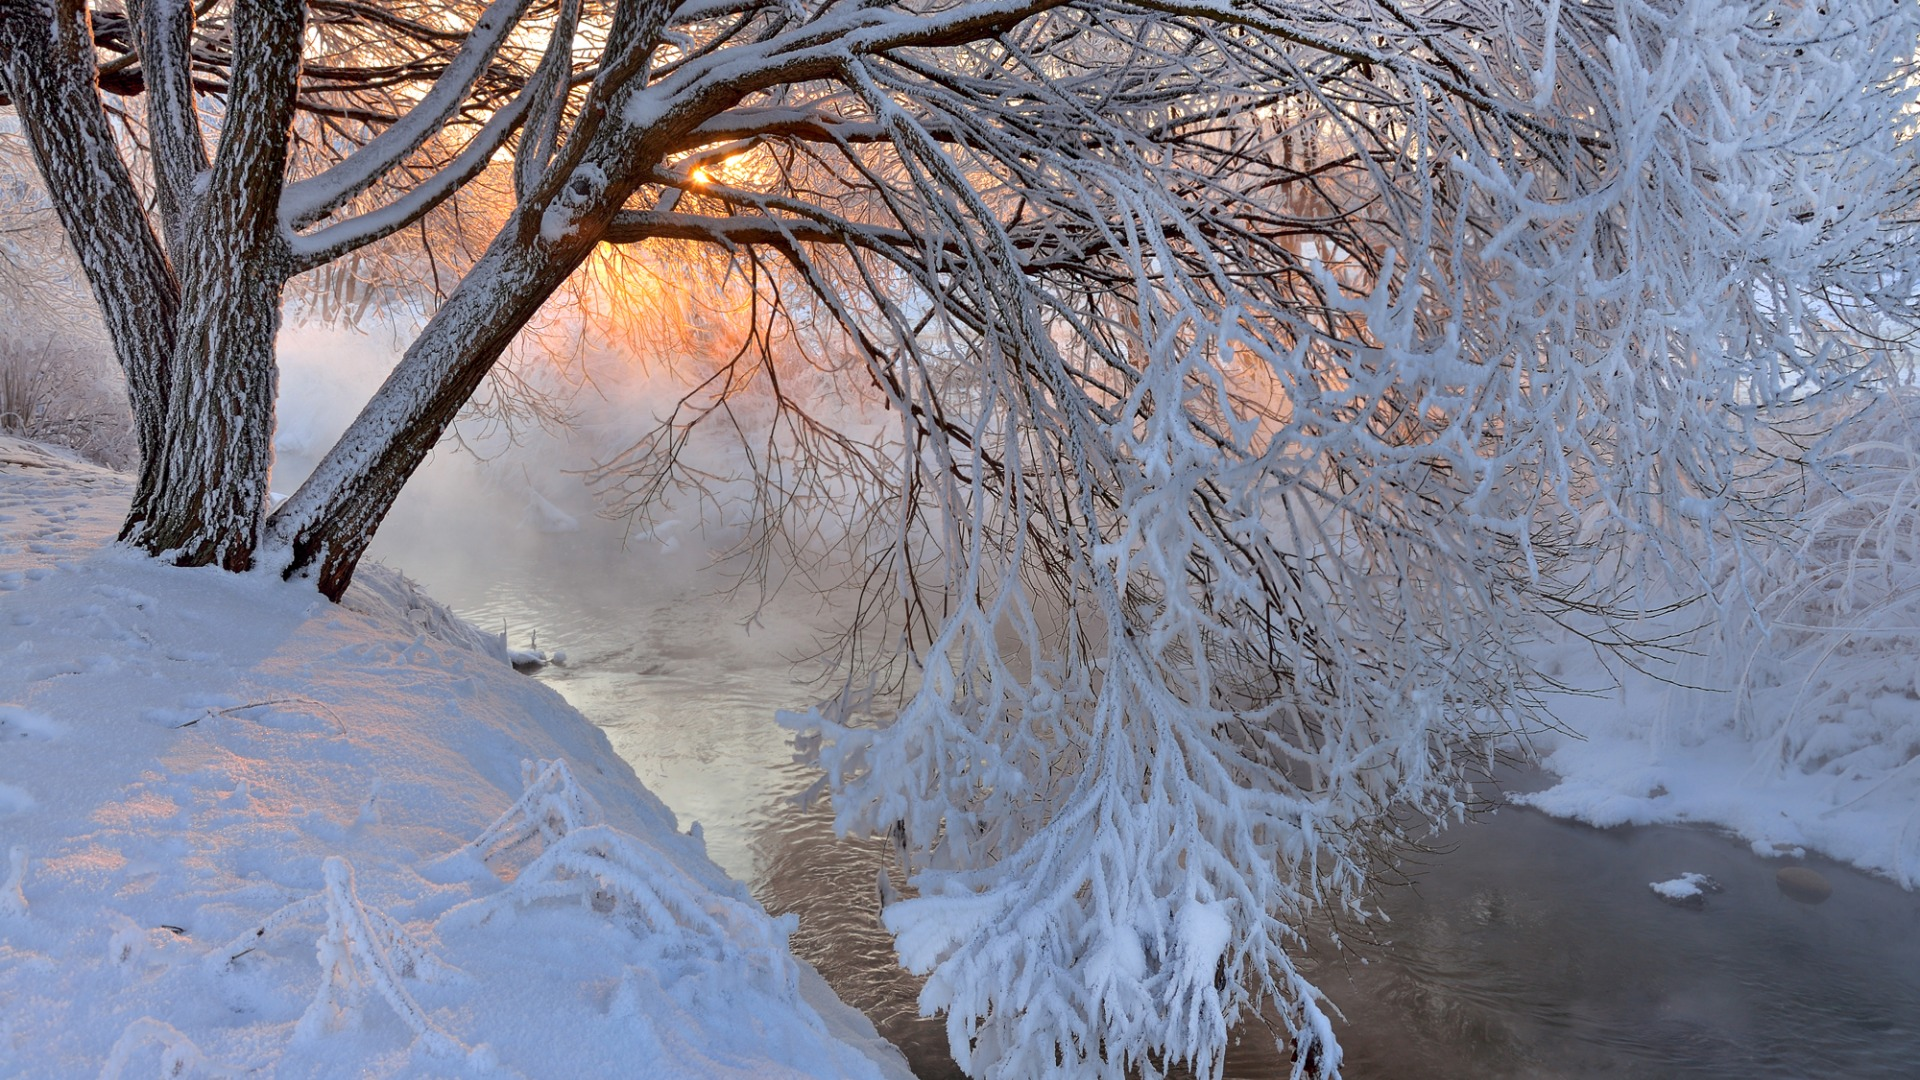 Download-winter-trees-landscape-sunset-mountains-nature-river-Snow-section-wallpaper-wp3605142